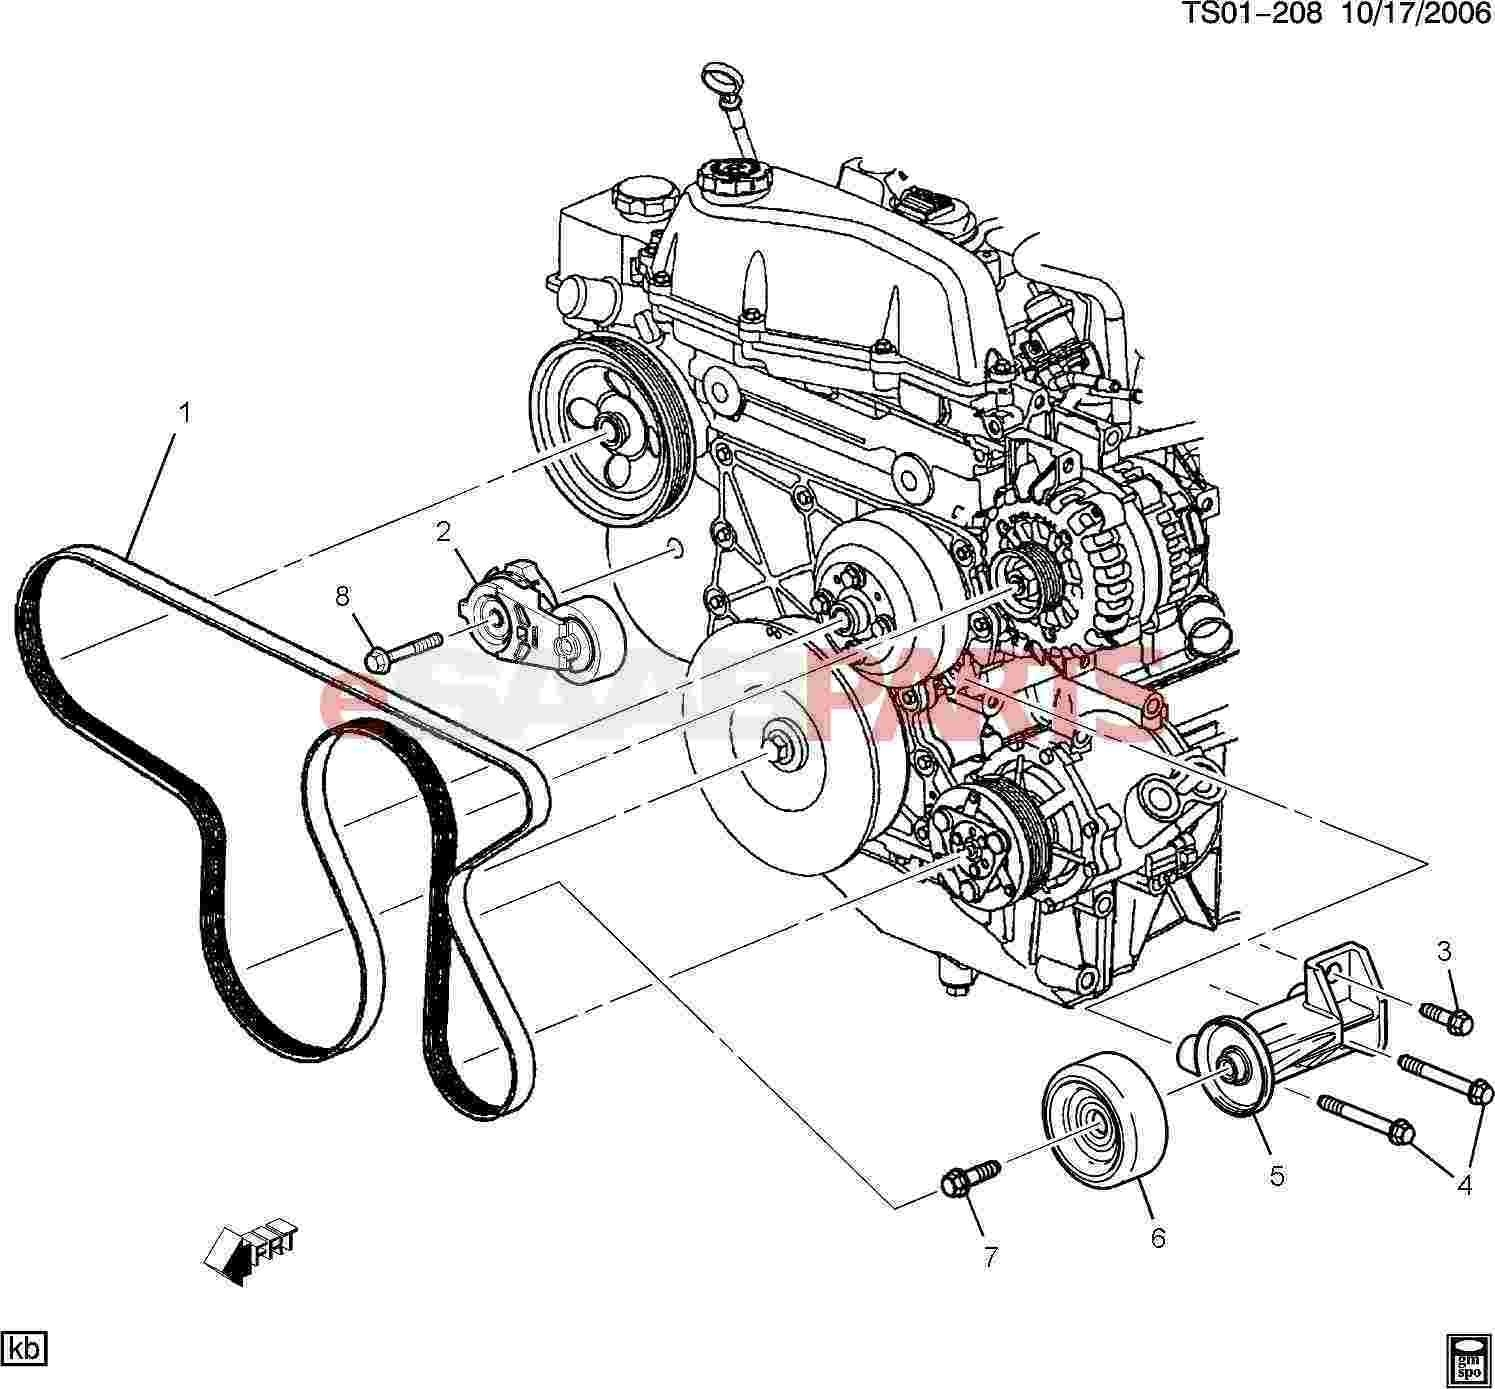 hight resolution of 2006 ford f150 parts diagram 2008 gmc sierra parts diagram saab 2008 ford f150 codes